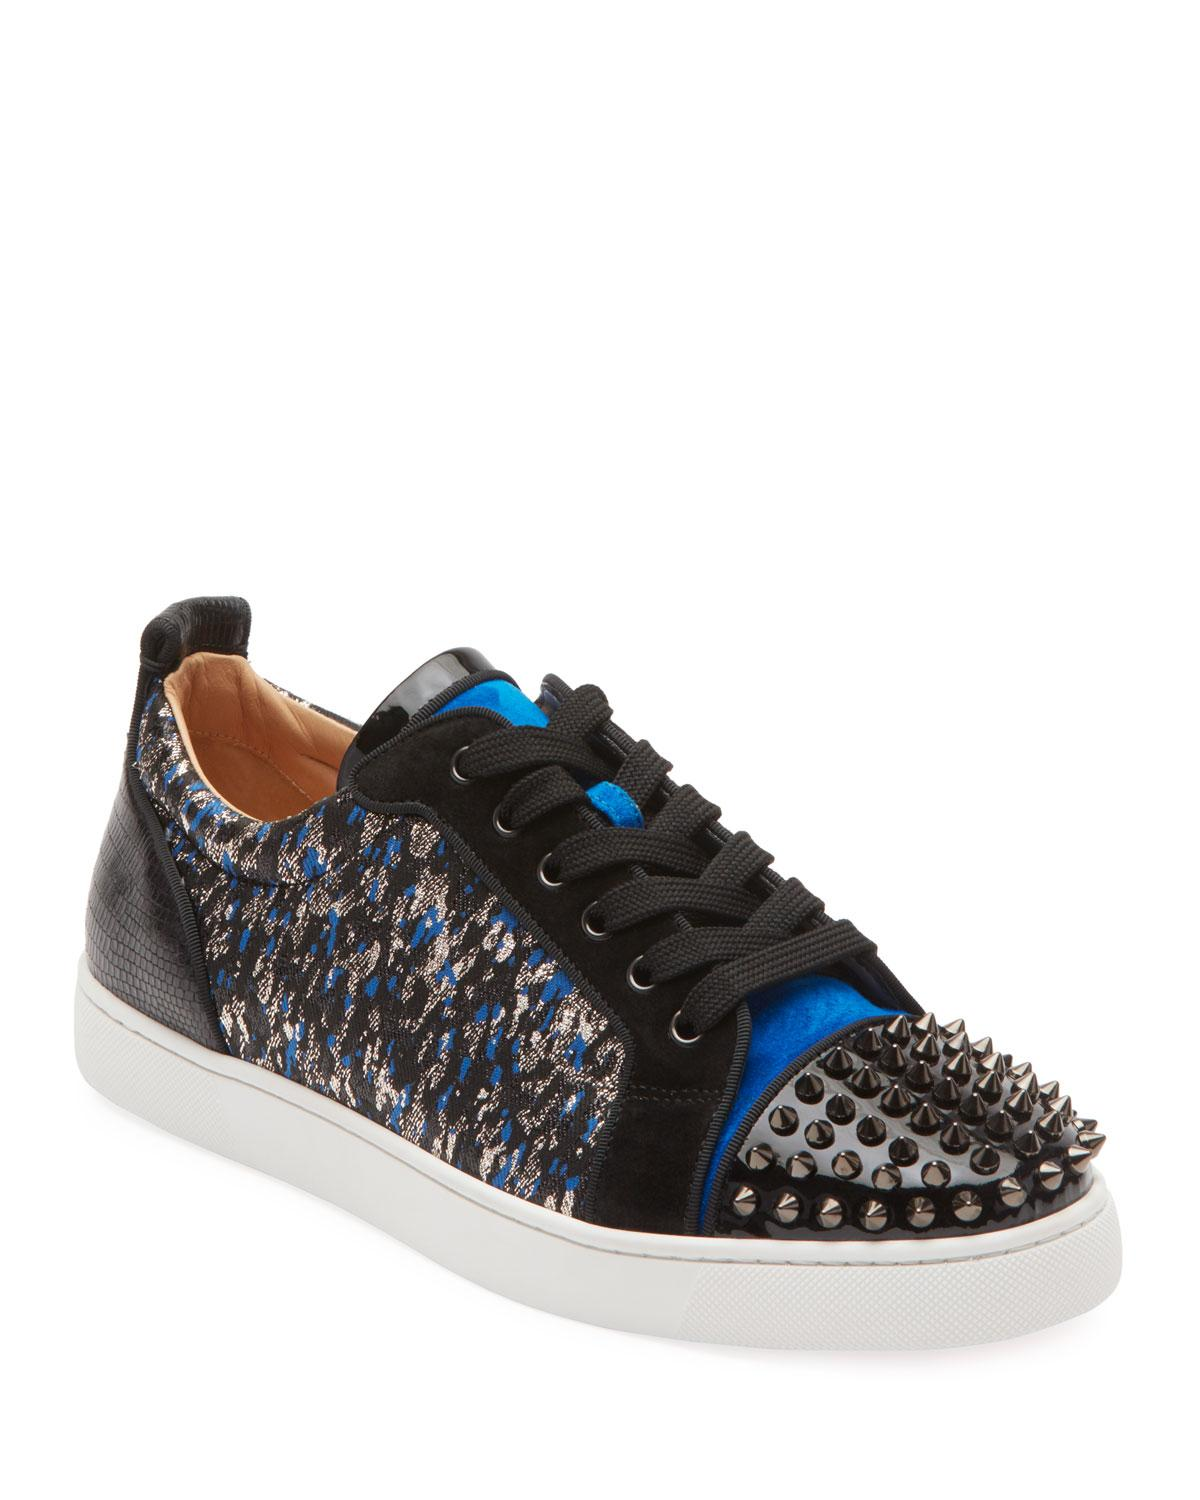 9a5202ca7e6 Christian Louboutin Men's Louis Junior Spike Low-tip Sneakers for ...